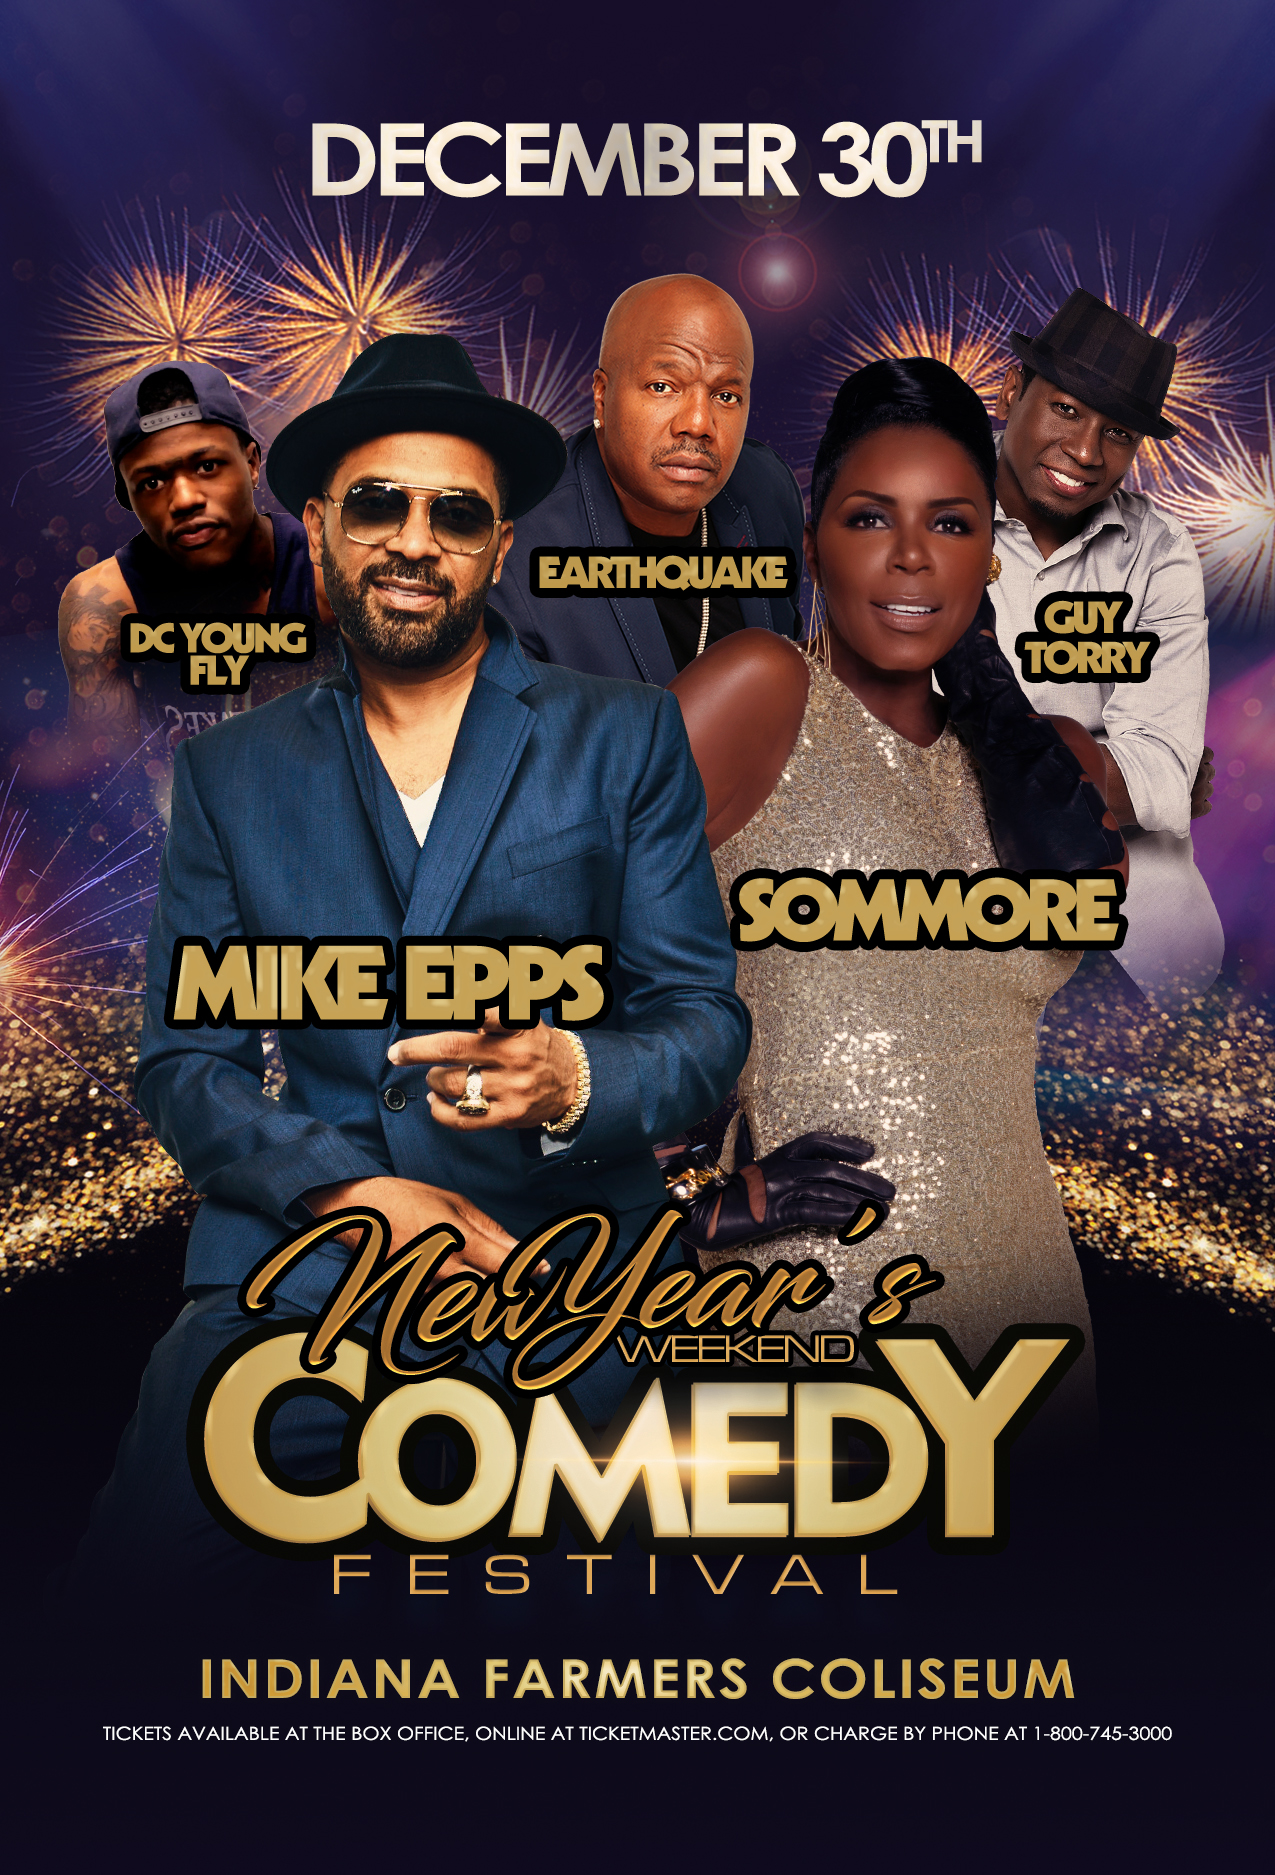 New Year's Weekend Comedy Festival Graphic